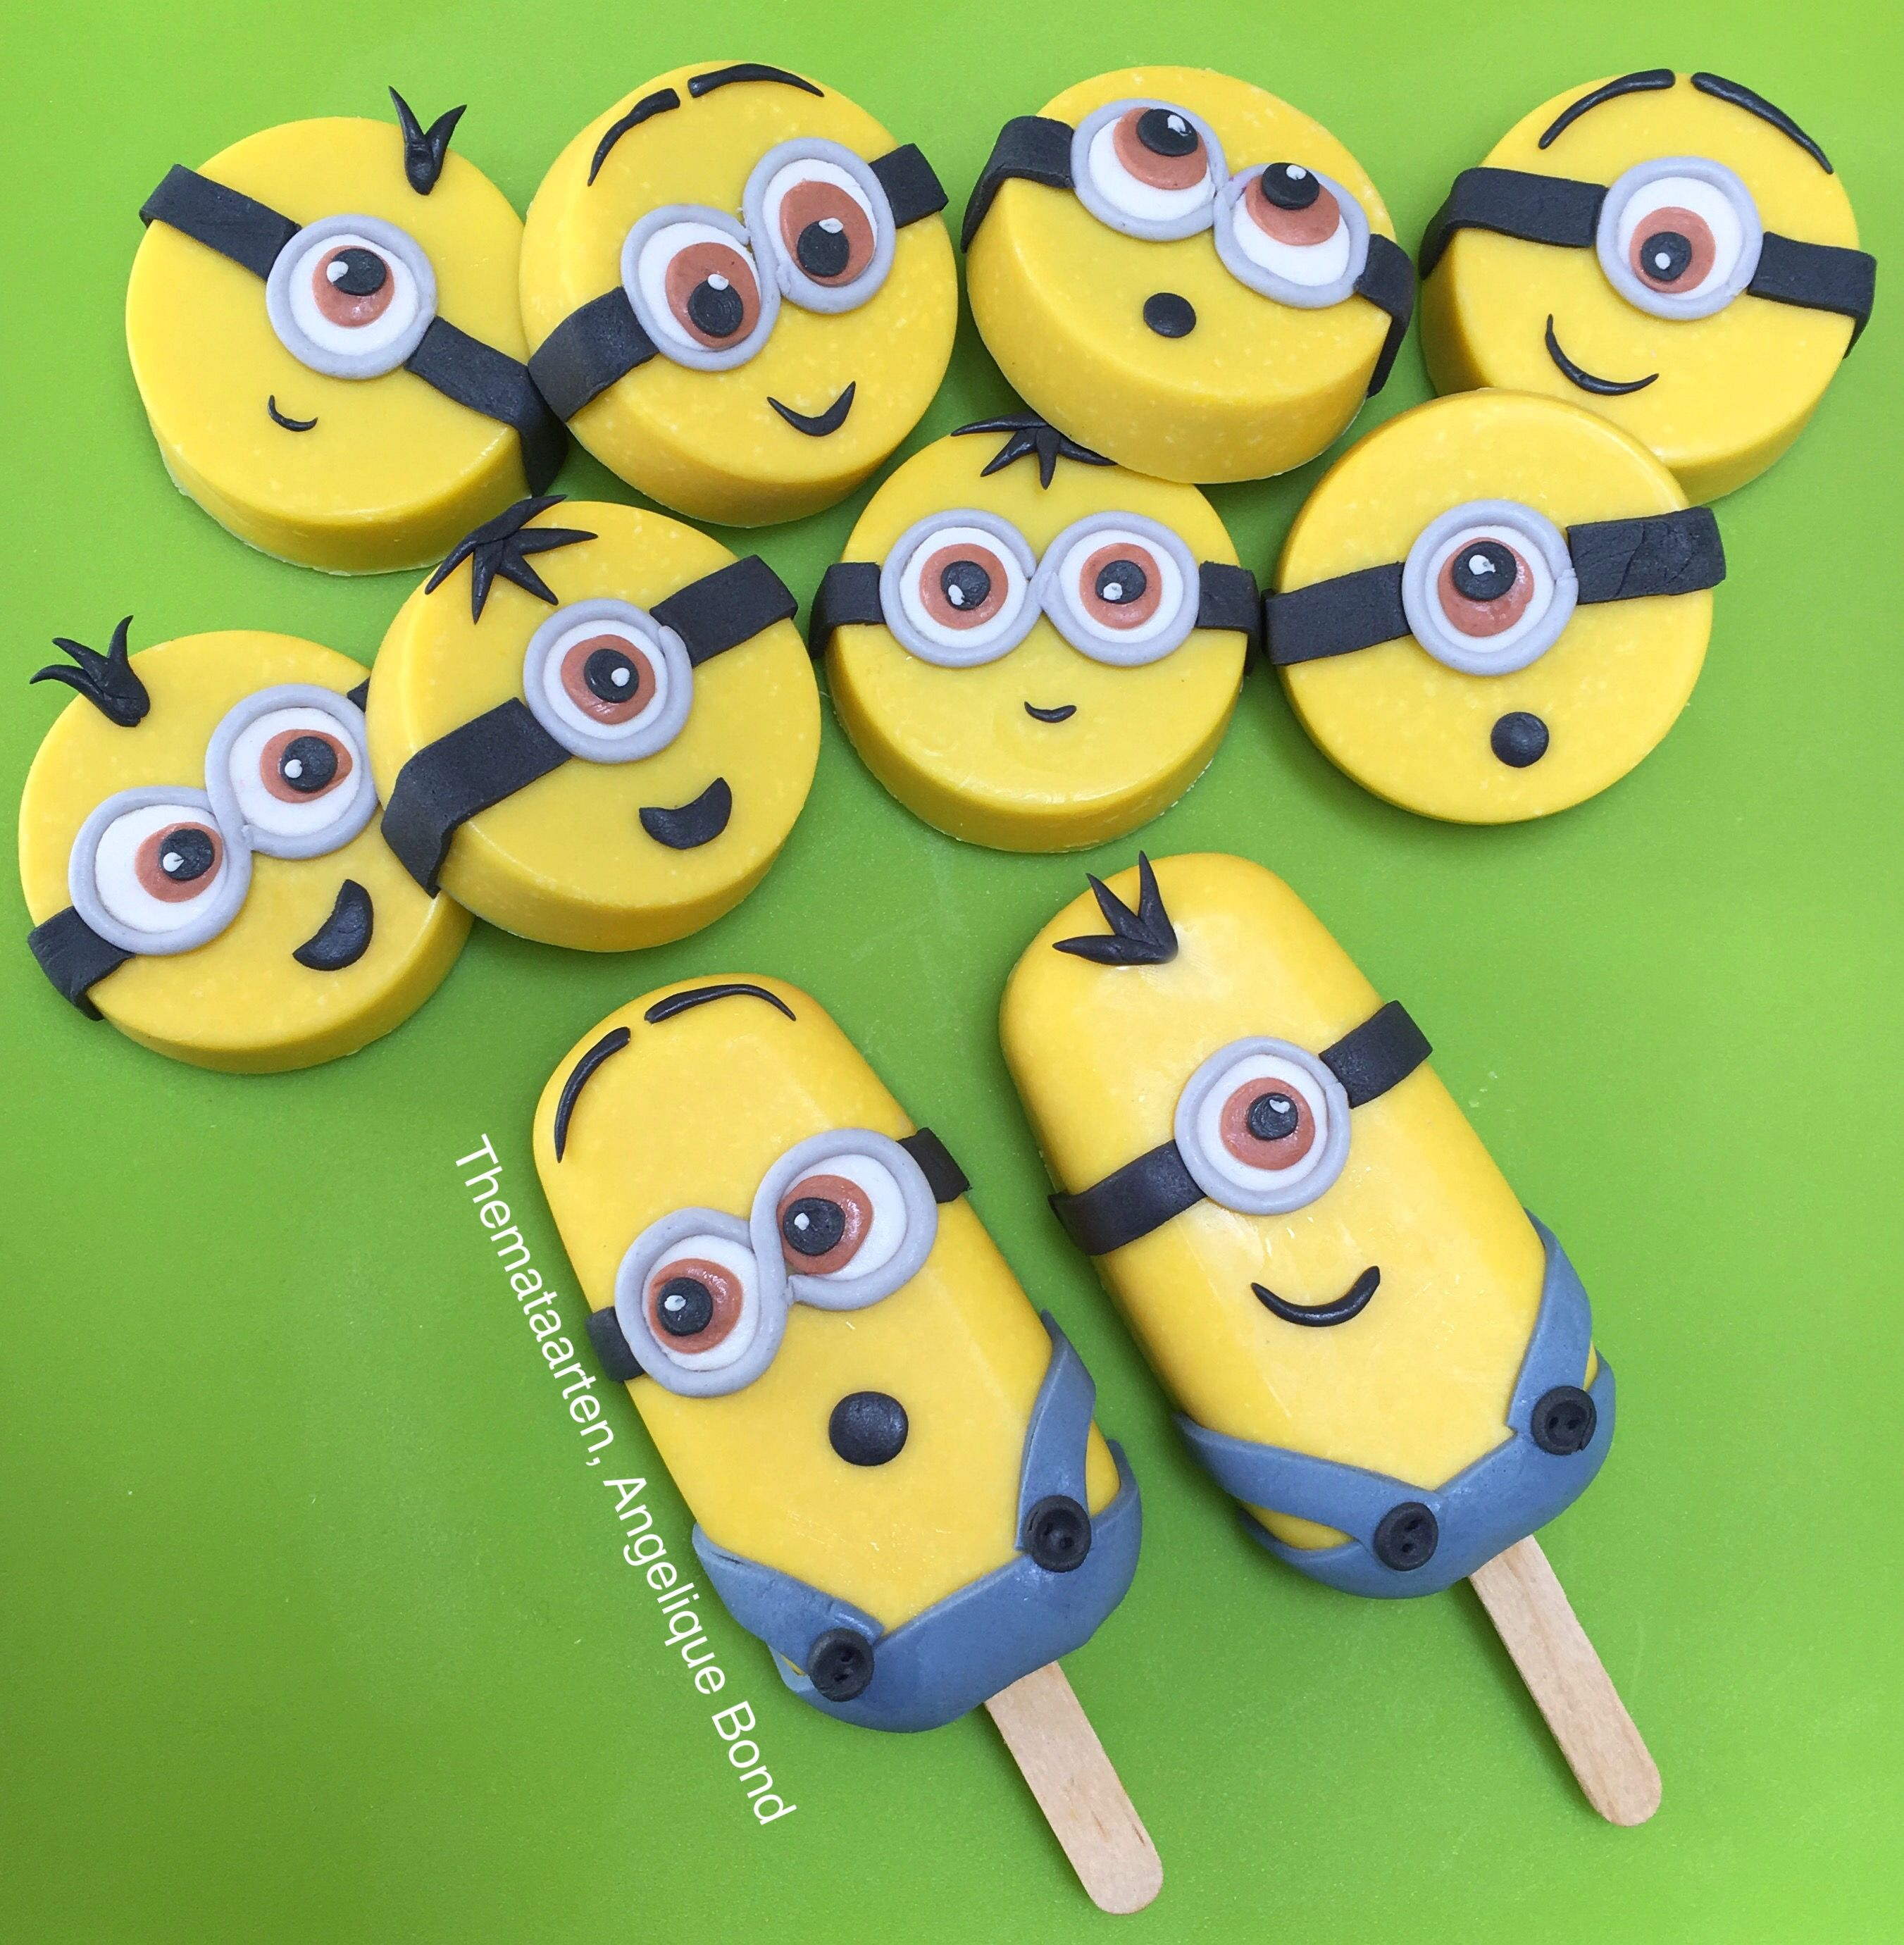 Minion Choco Lolly S And Oreo Cookie Chocs Made By Angelique